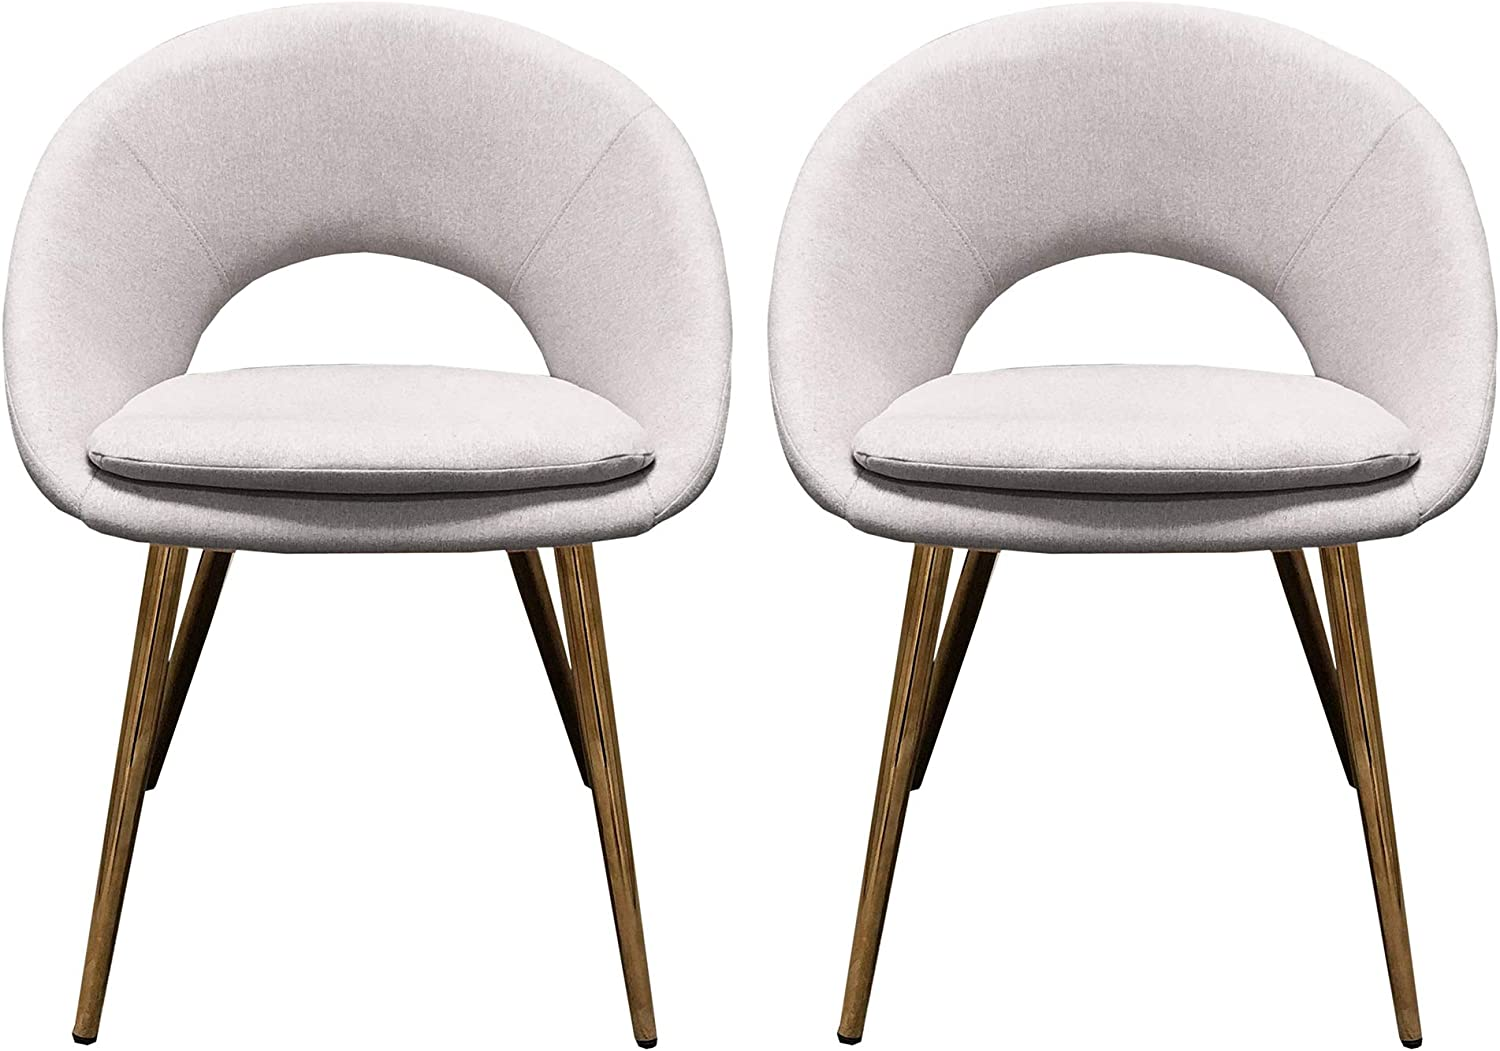 Design Guild Fabric Don't miss the campaign 2 Piece Set Lowest price challenge Chairs Sof Upholstered Armless w